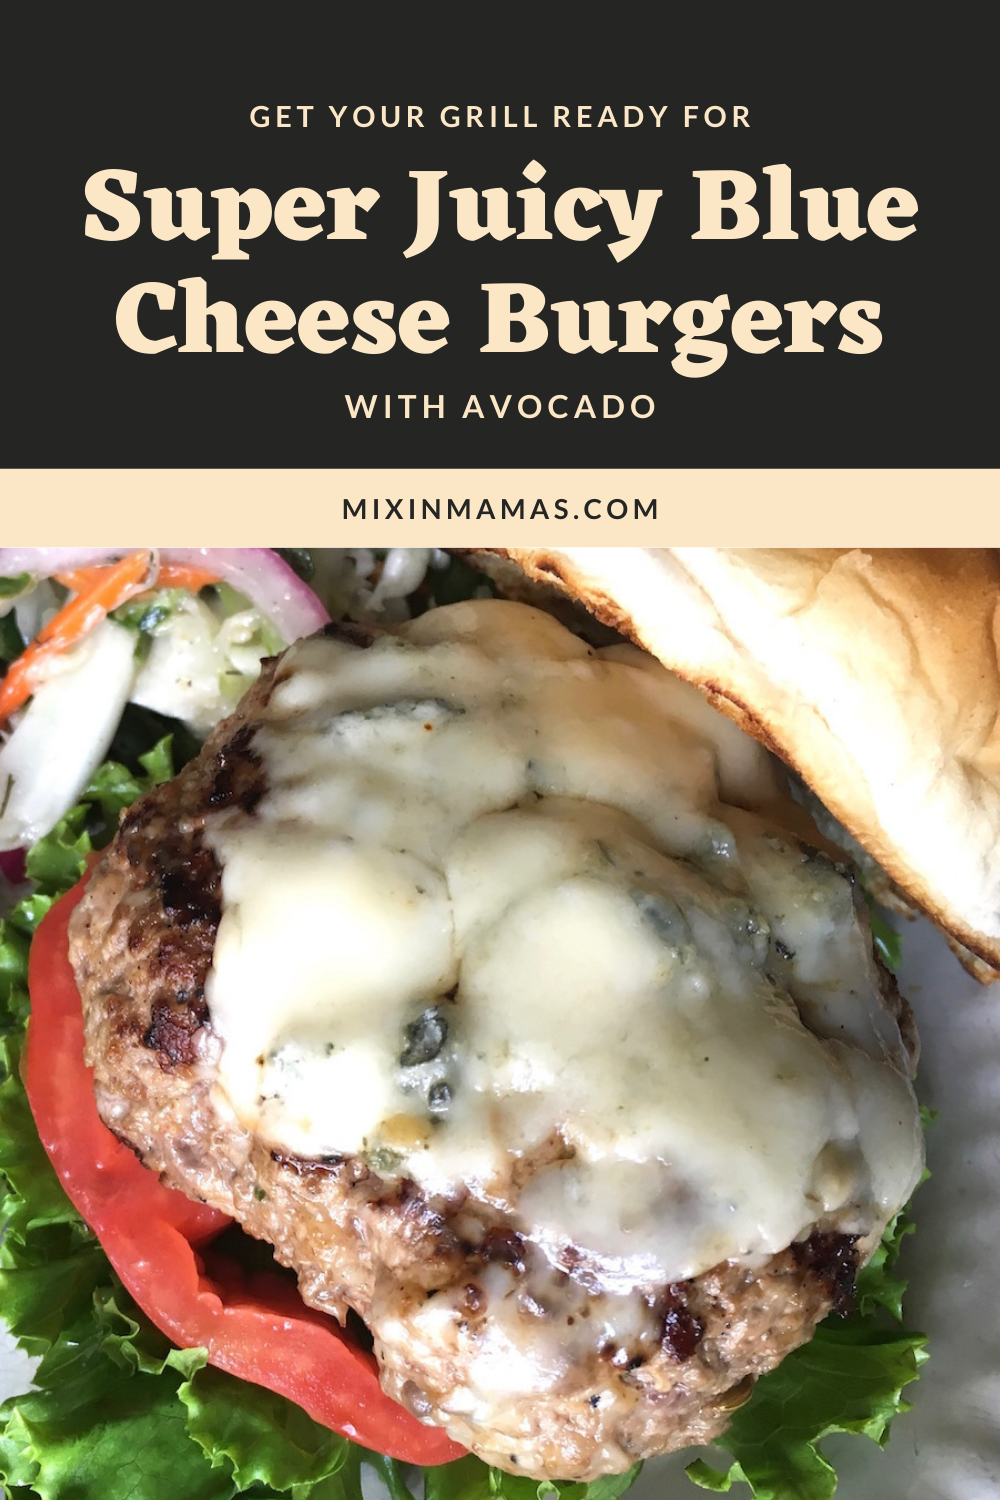 Get Your Grill Ready for Super Juicy Blue Cheese Burgers with Avocado